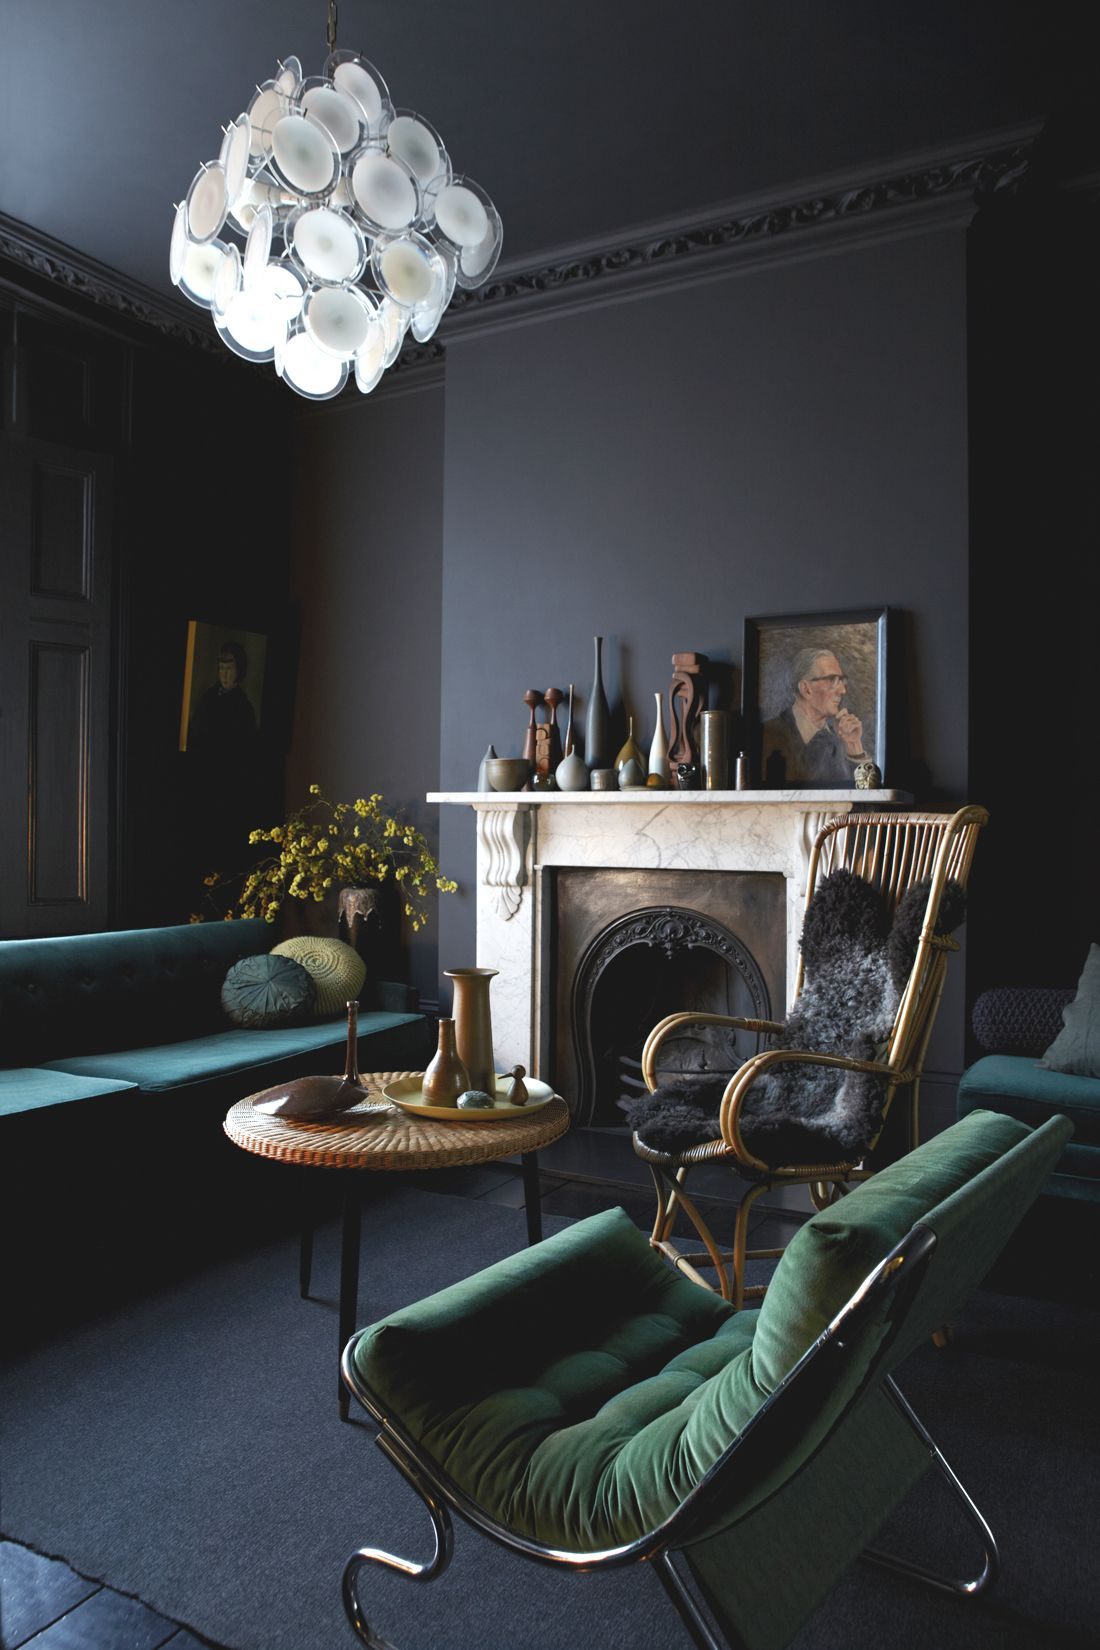 homes: why dark grey is a bright idea | life and style | the